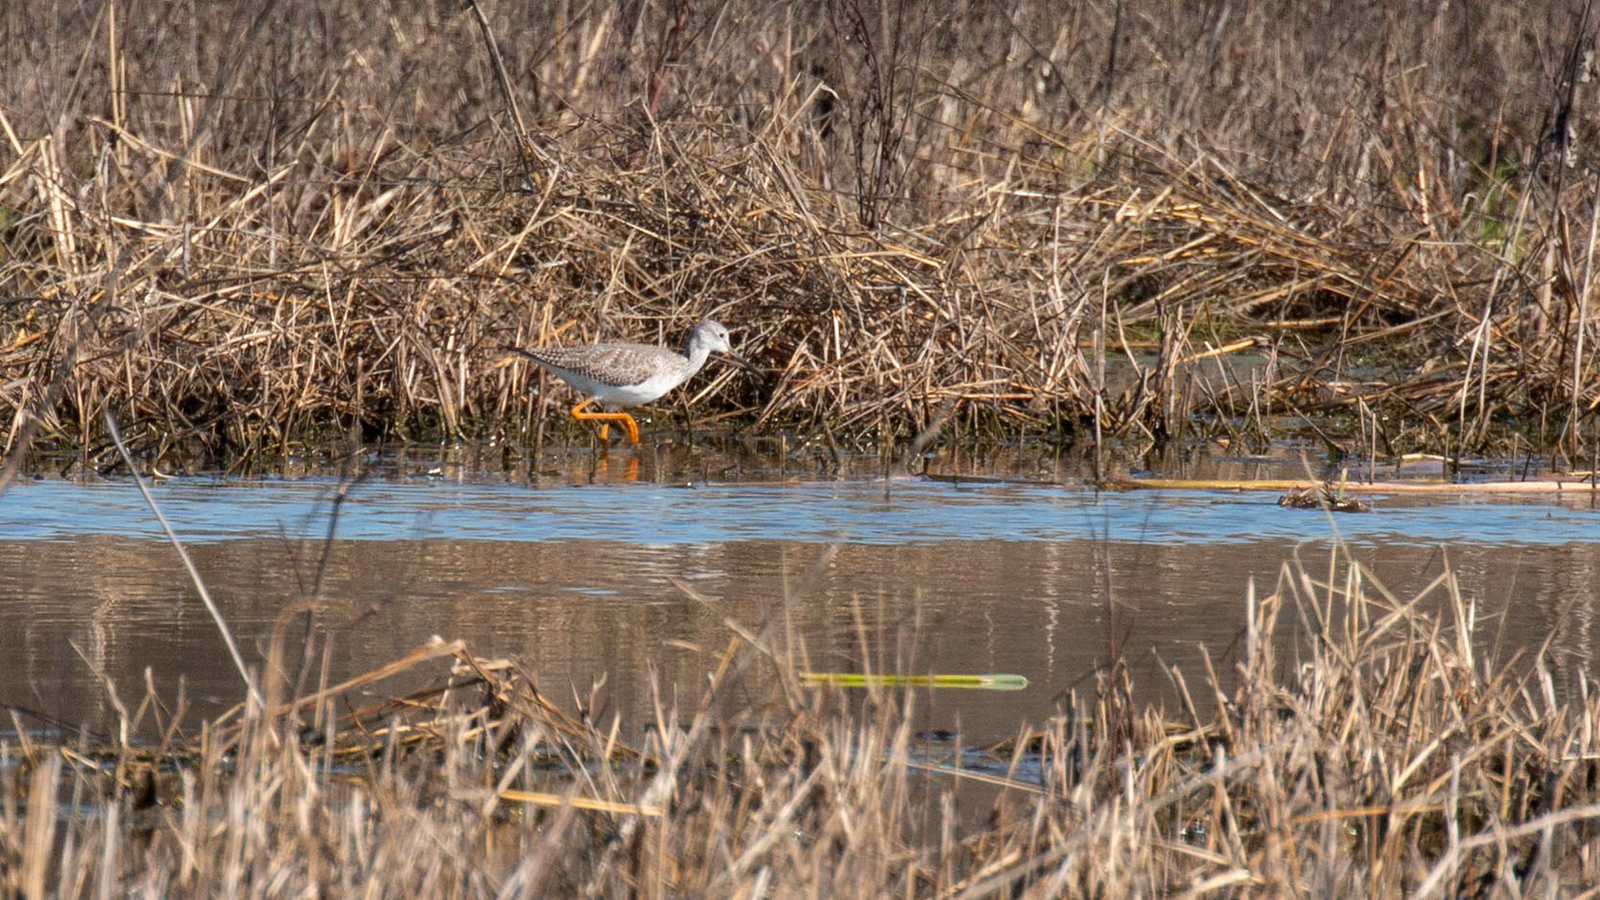 Photograph of a Greater Yellowlegs